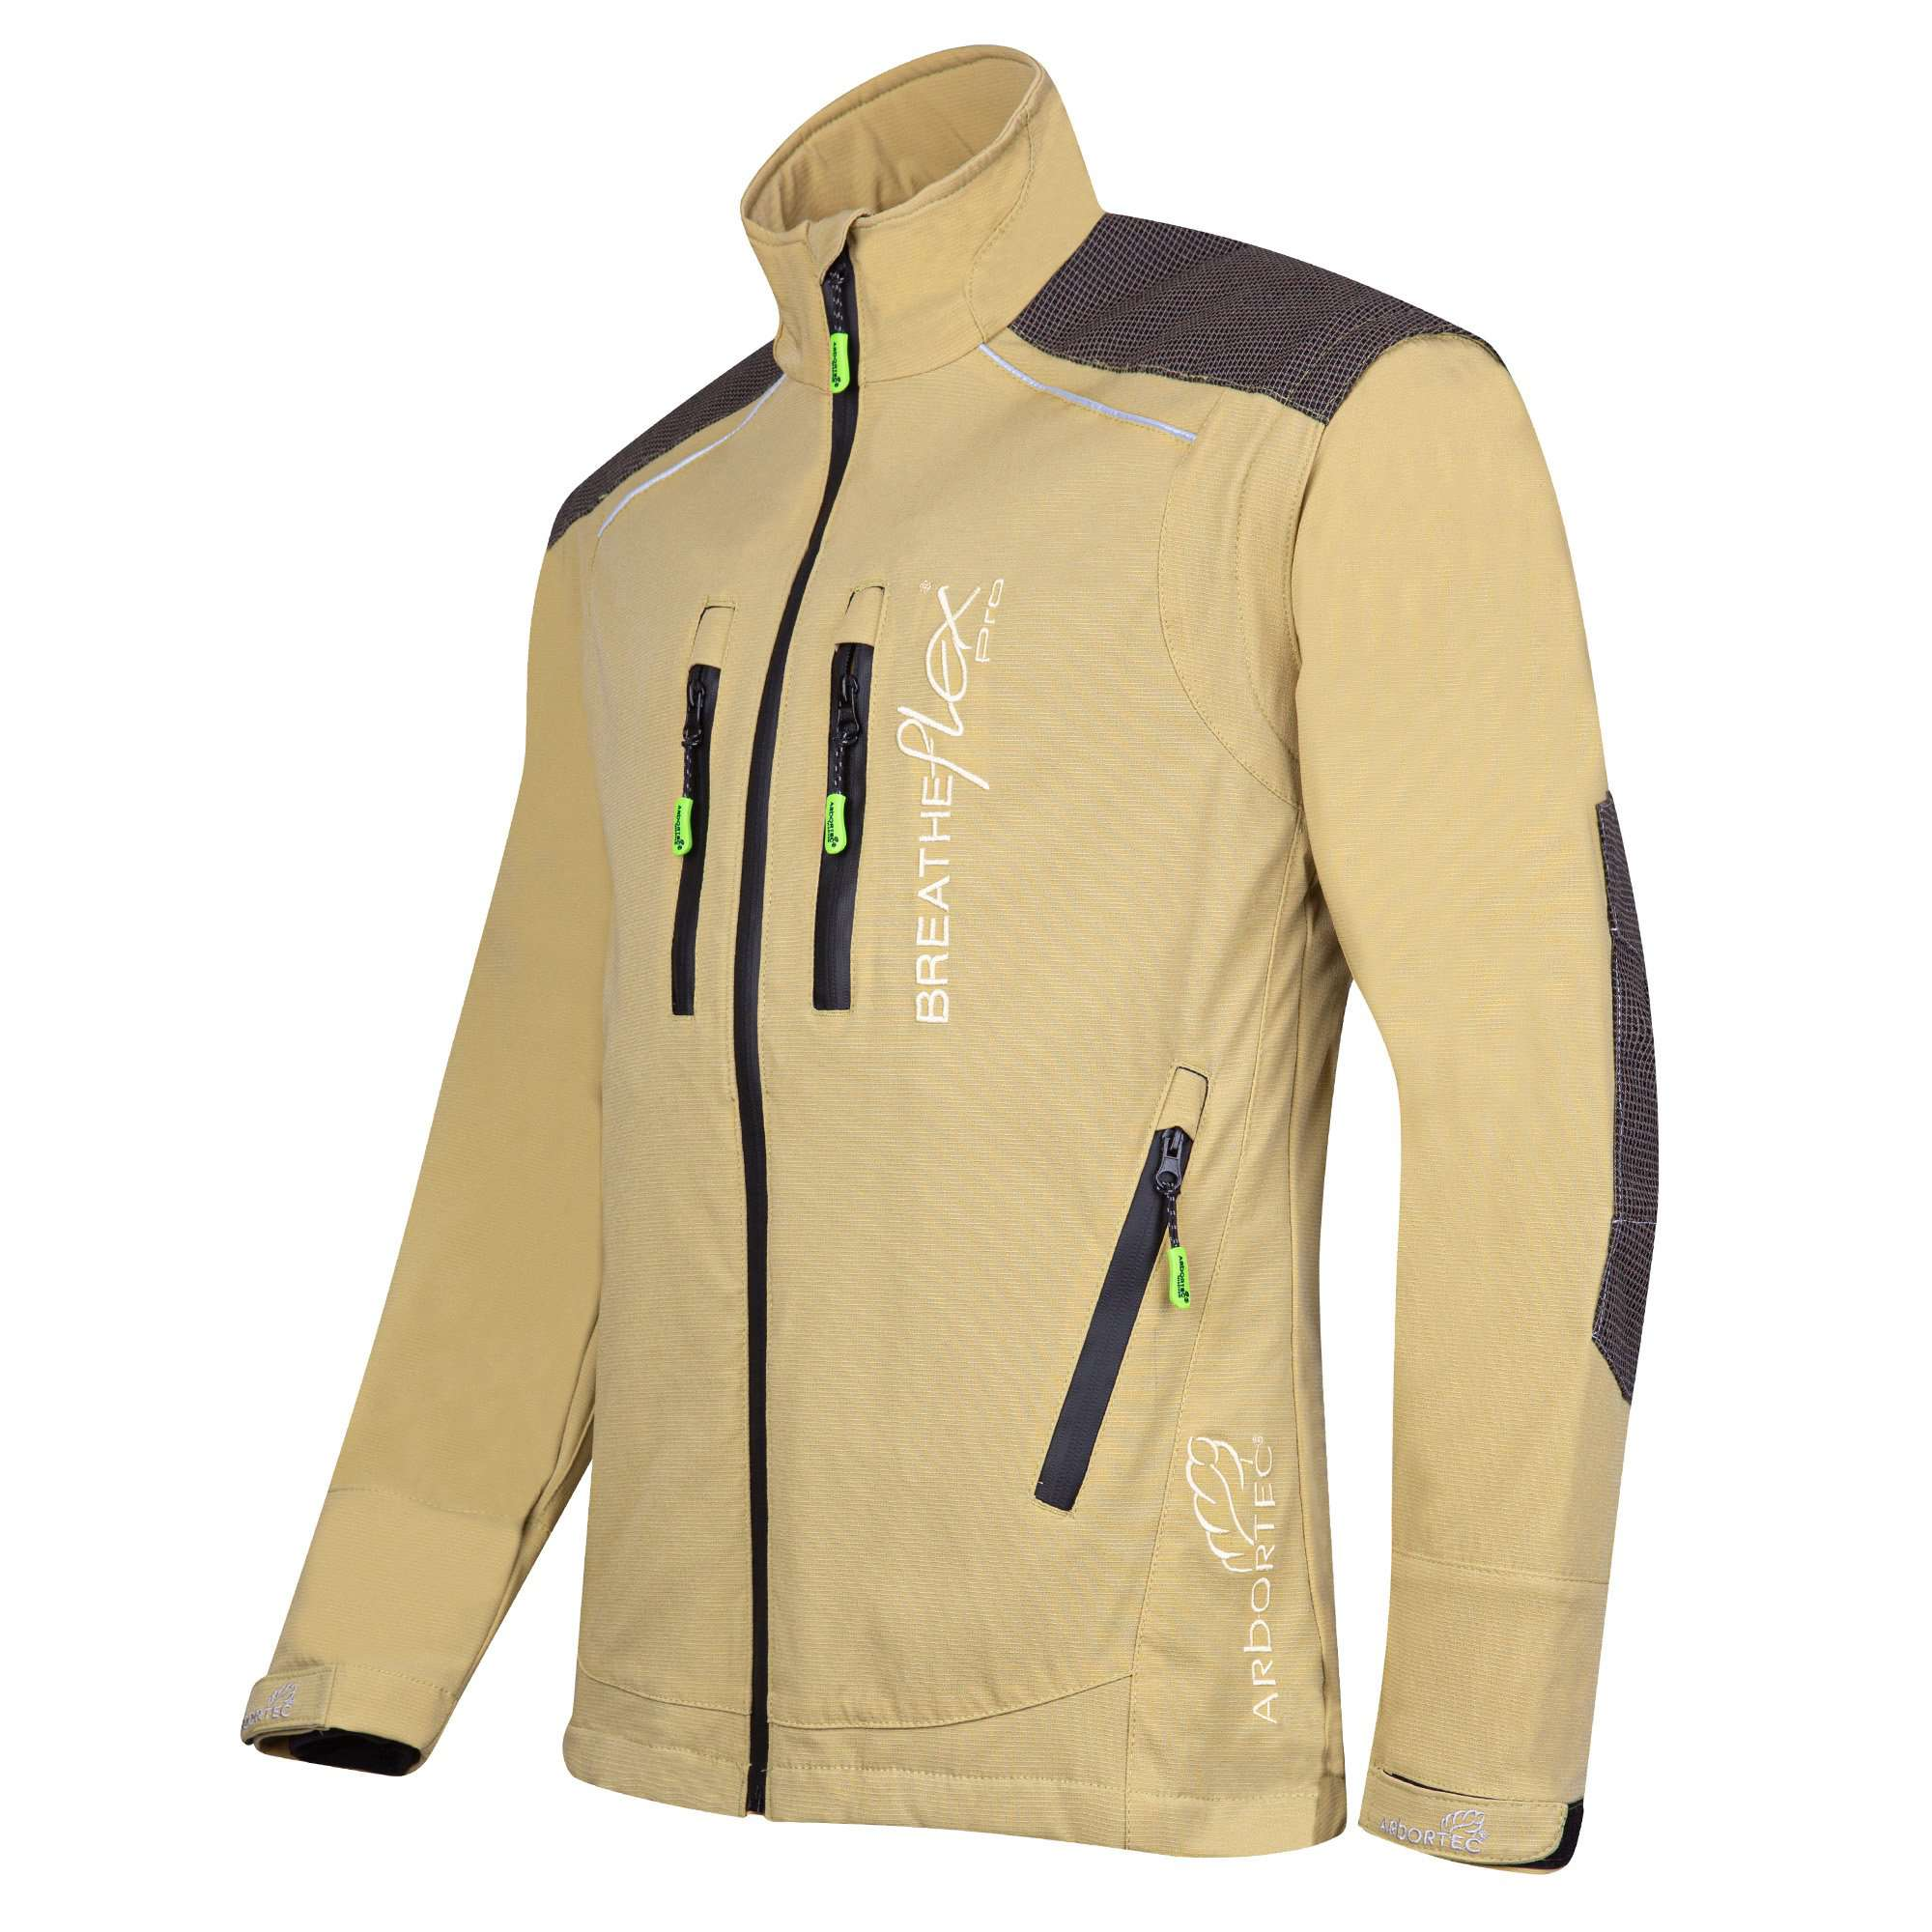 AT4000 Breatheflex Pro Work Jacket - Beige